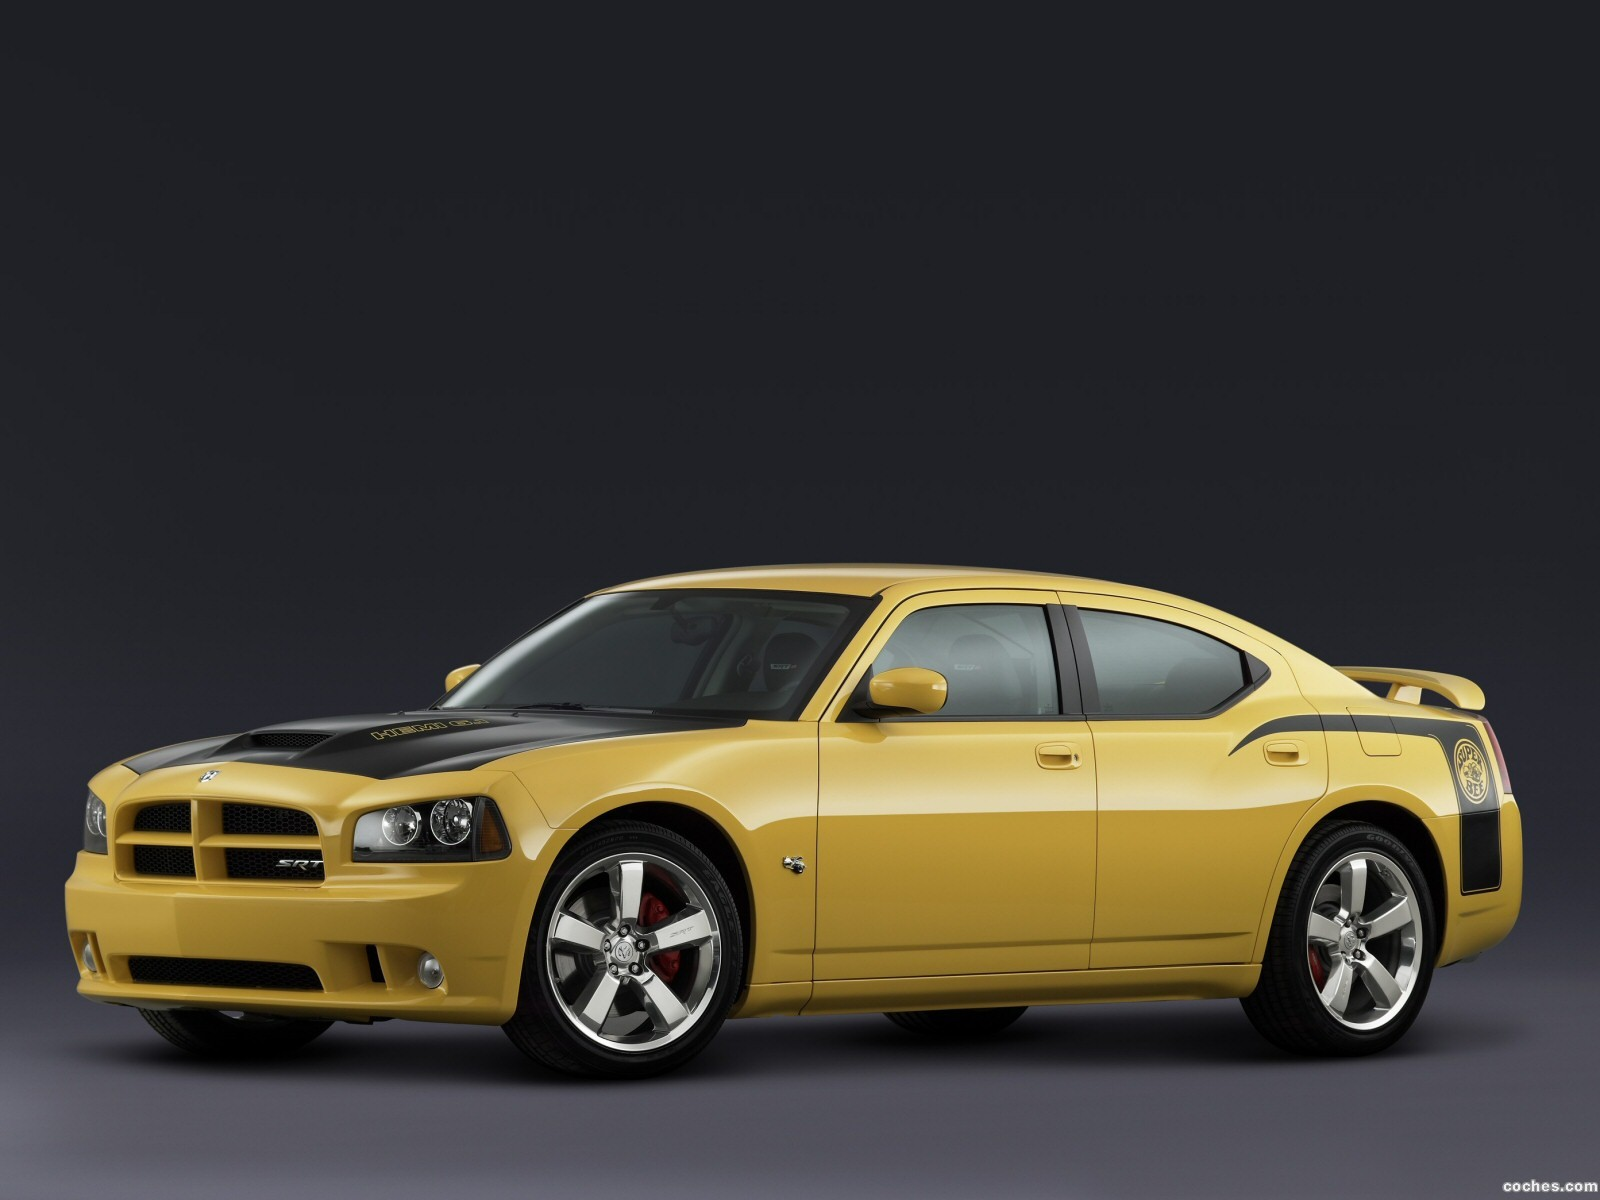 Foto 0 de Dodge Charger SRT-8 Super Bee 2007